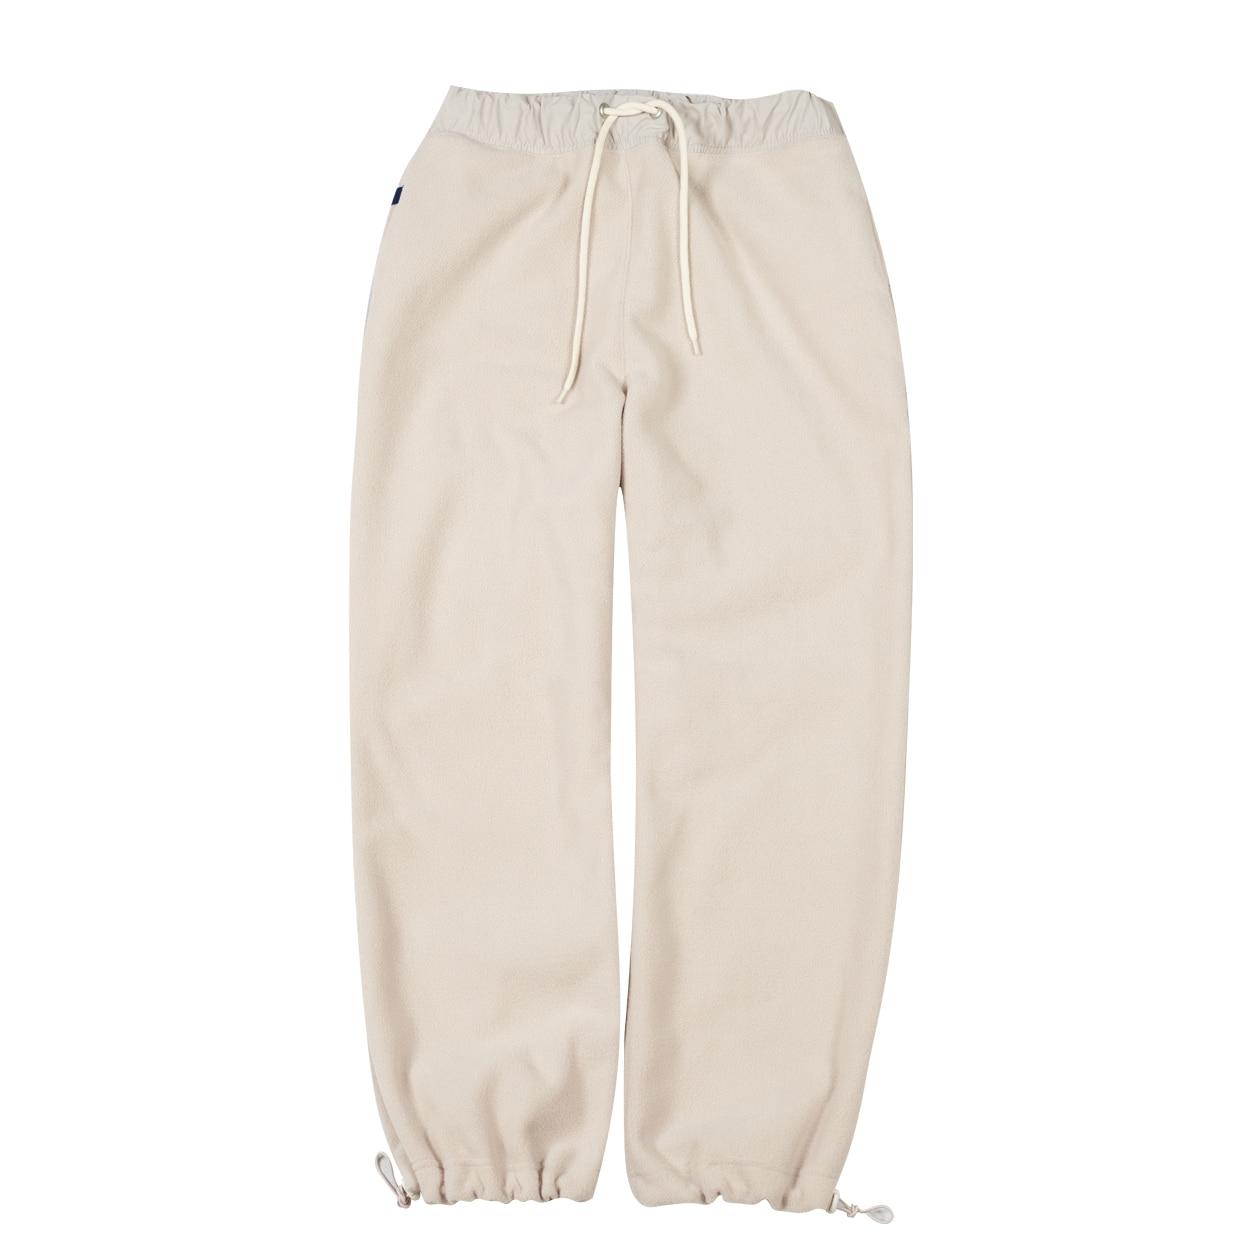 FLEECE PANTS - IVORY